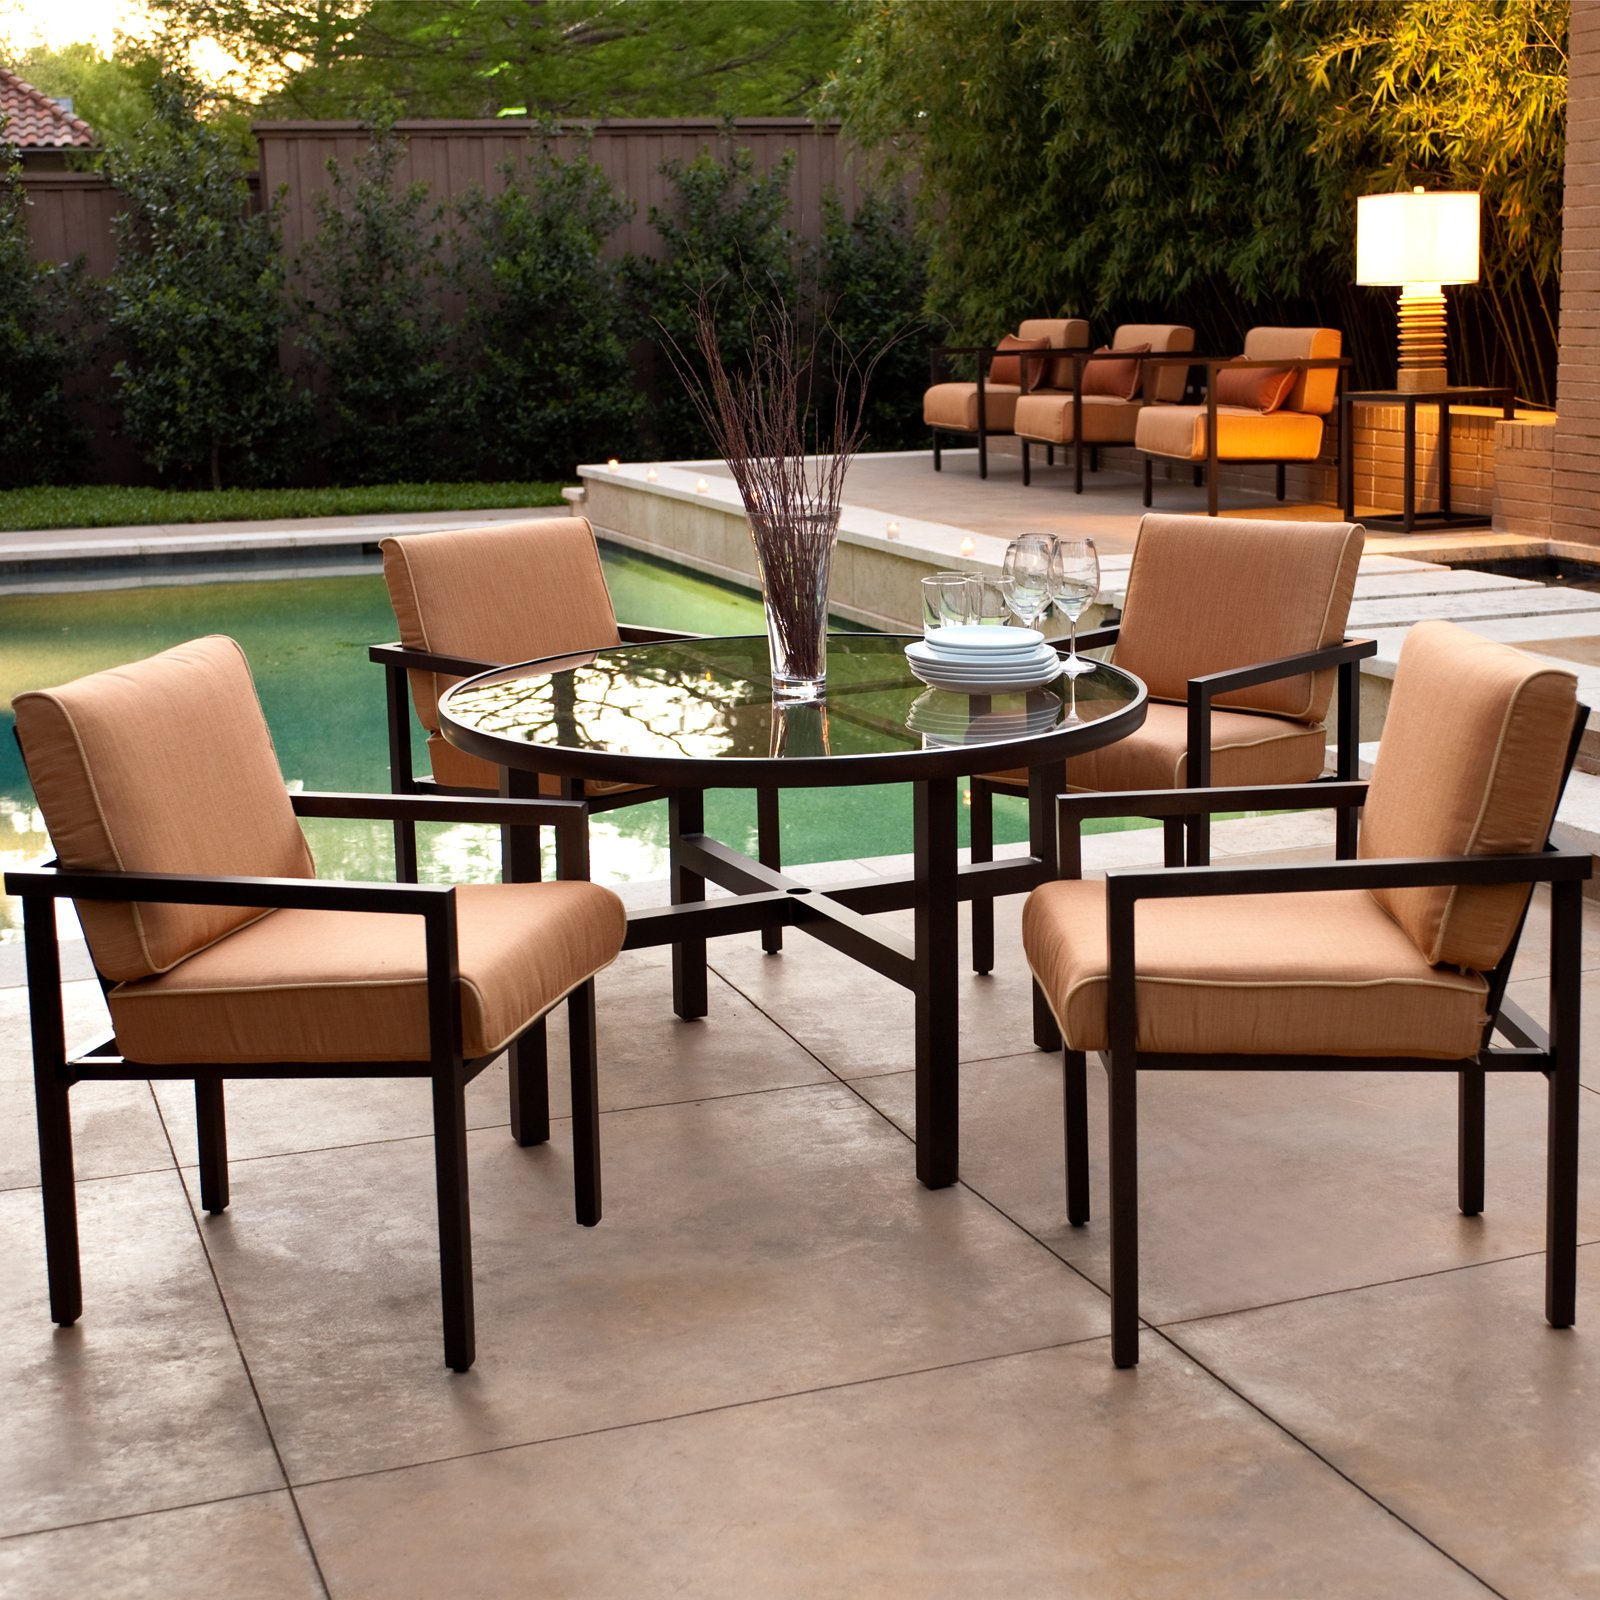 Places to go for affordable modern outdoor furniture for Outdoor modern patio furniture